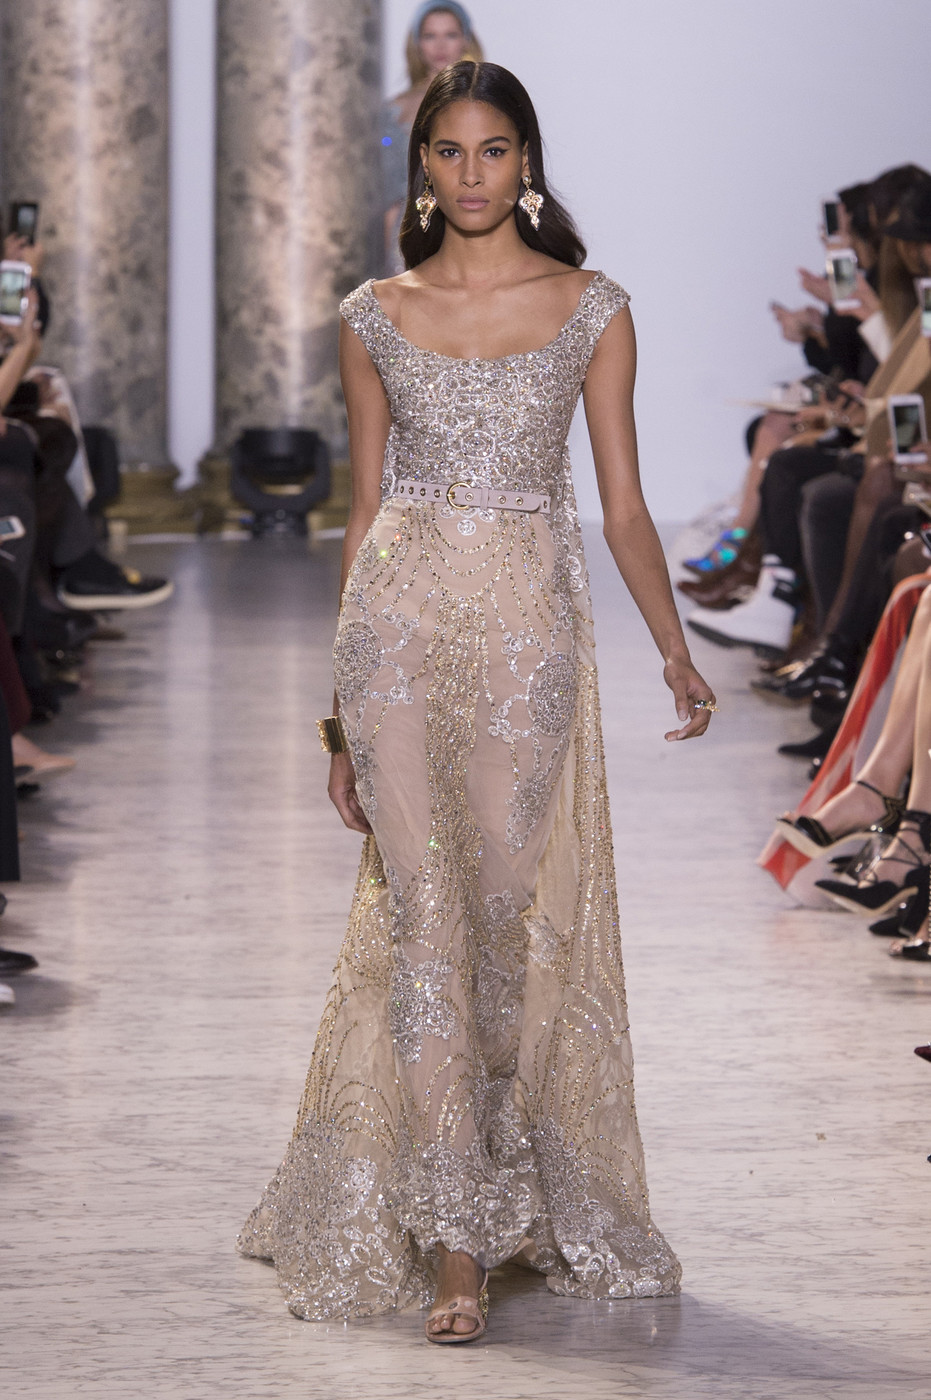 Elie saab at couture spring 2017 livingly for Couture 2017